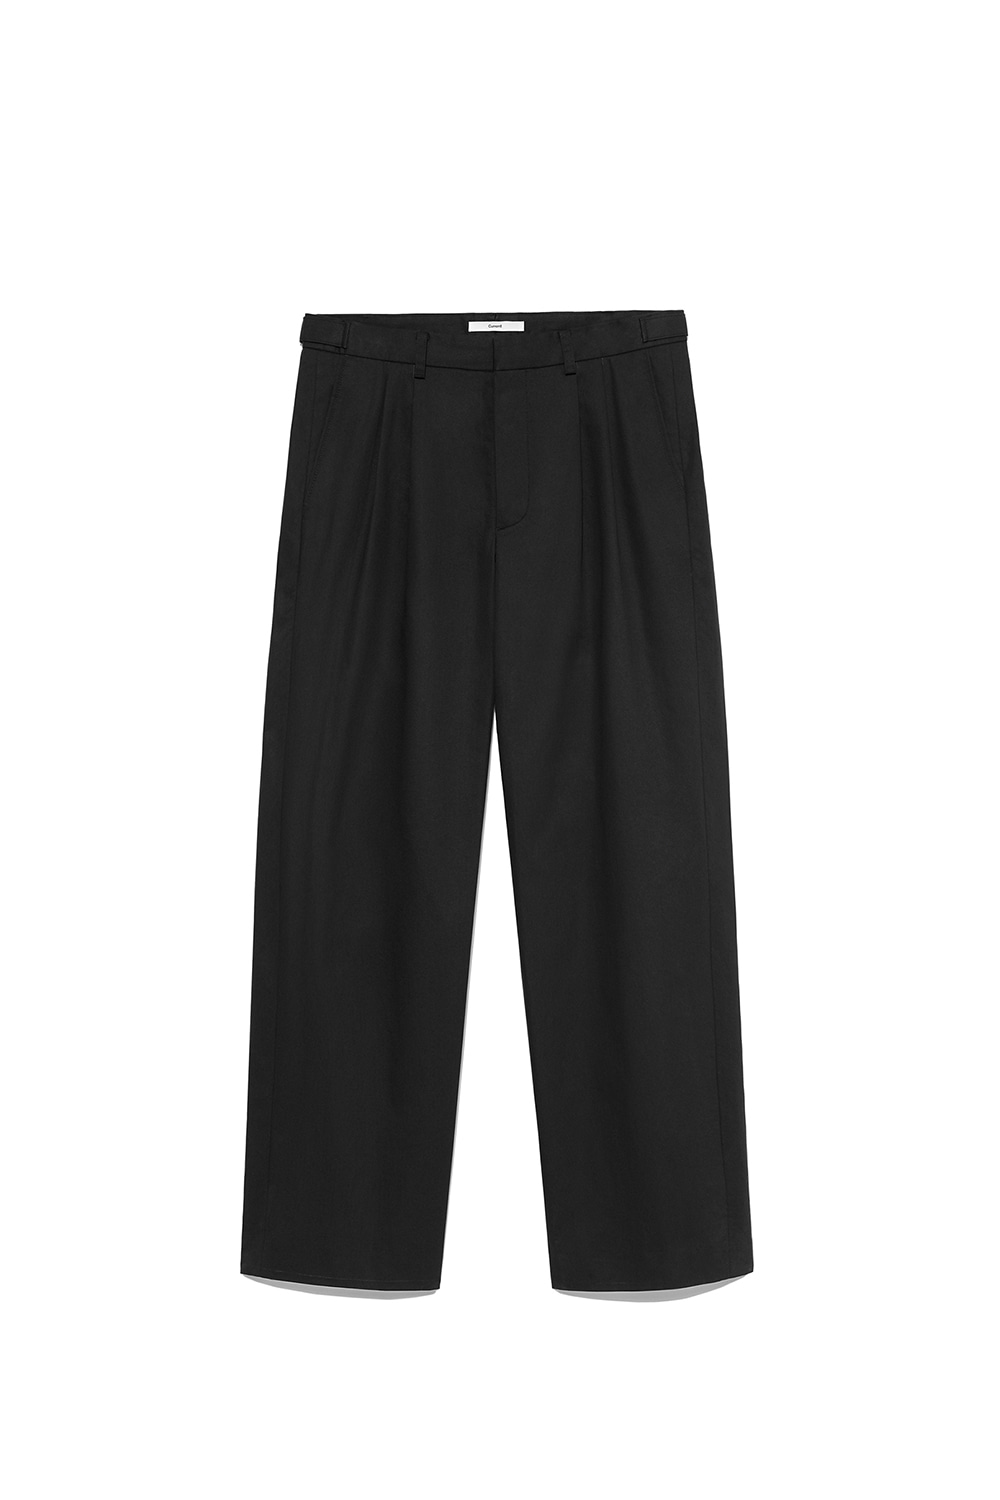 Two Tuck Pants Men [Black]